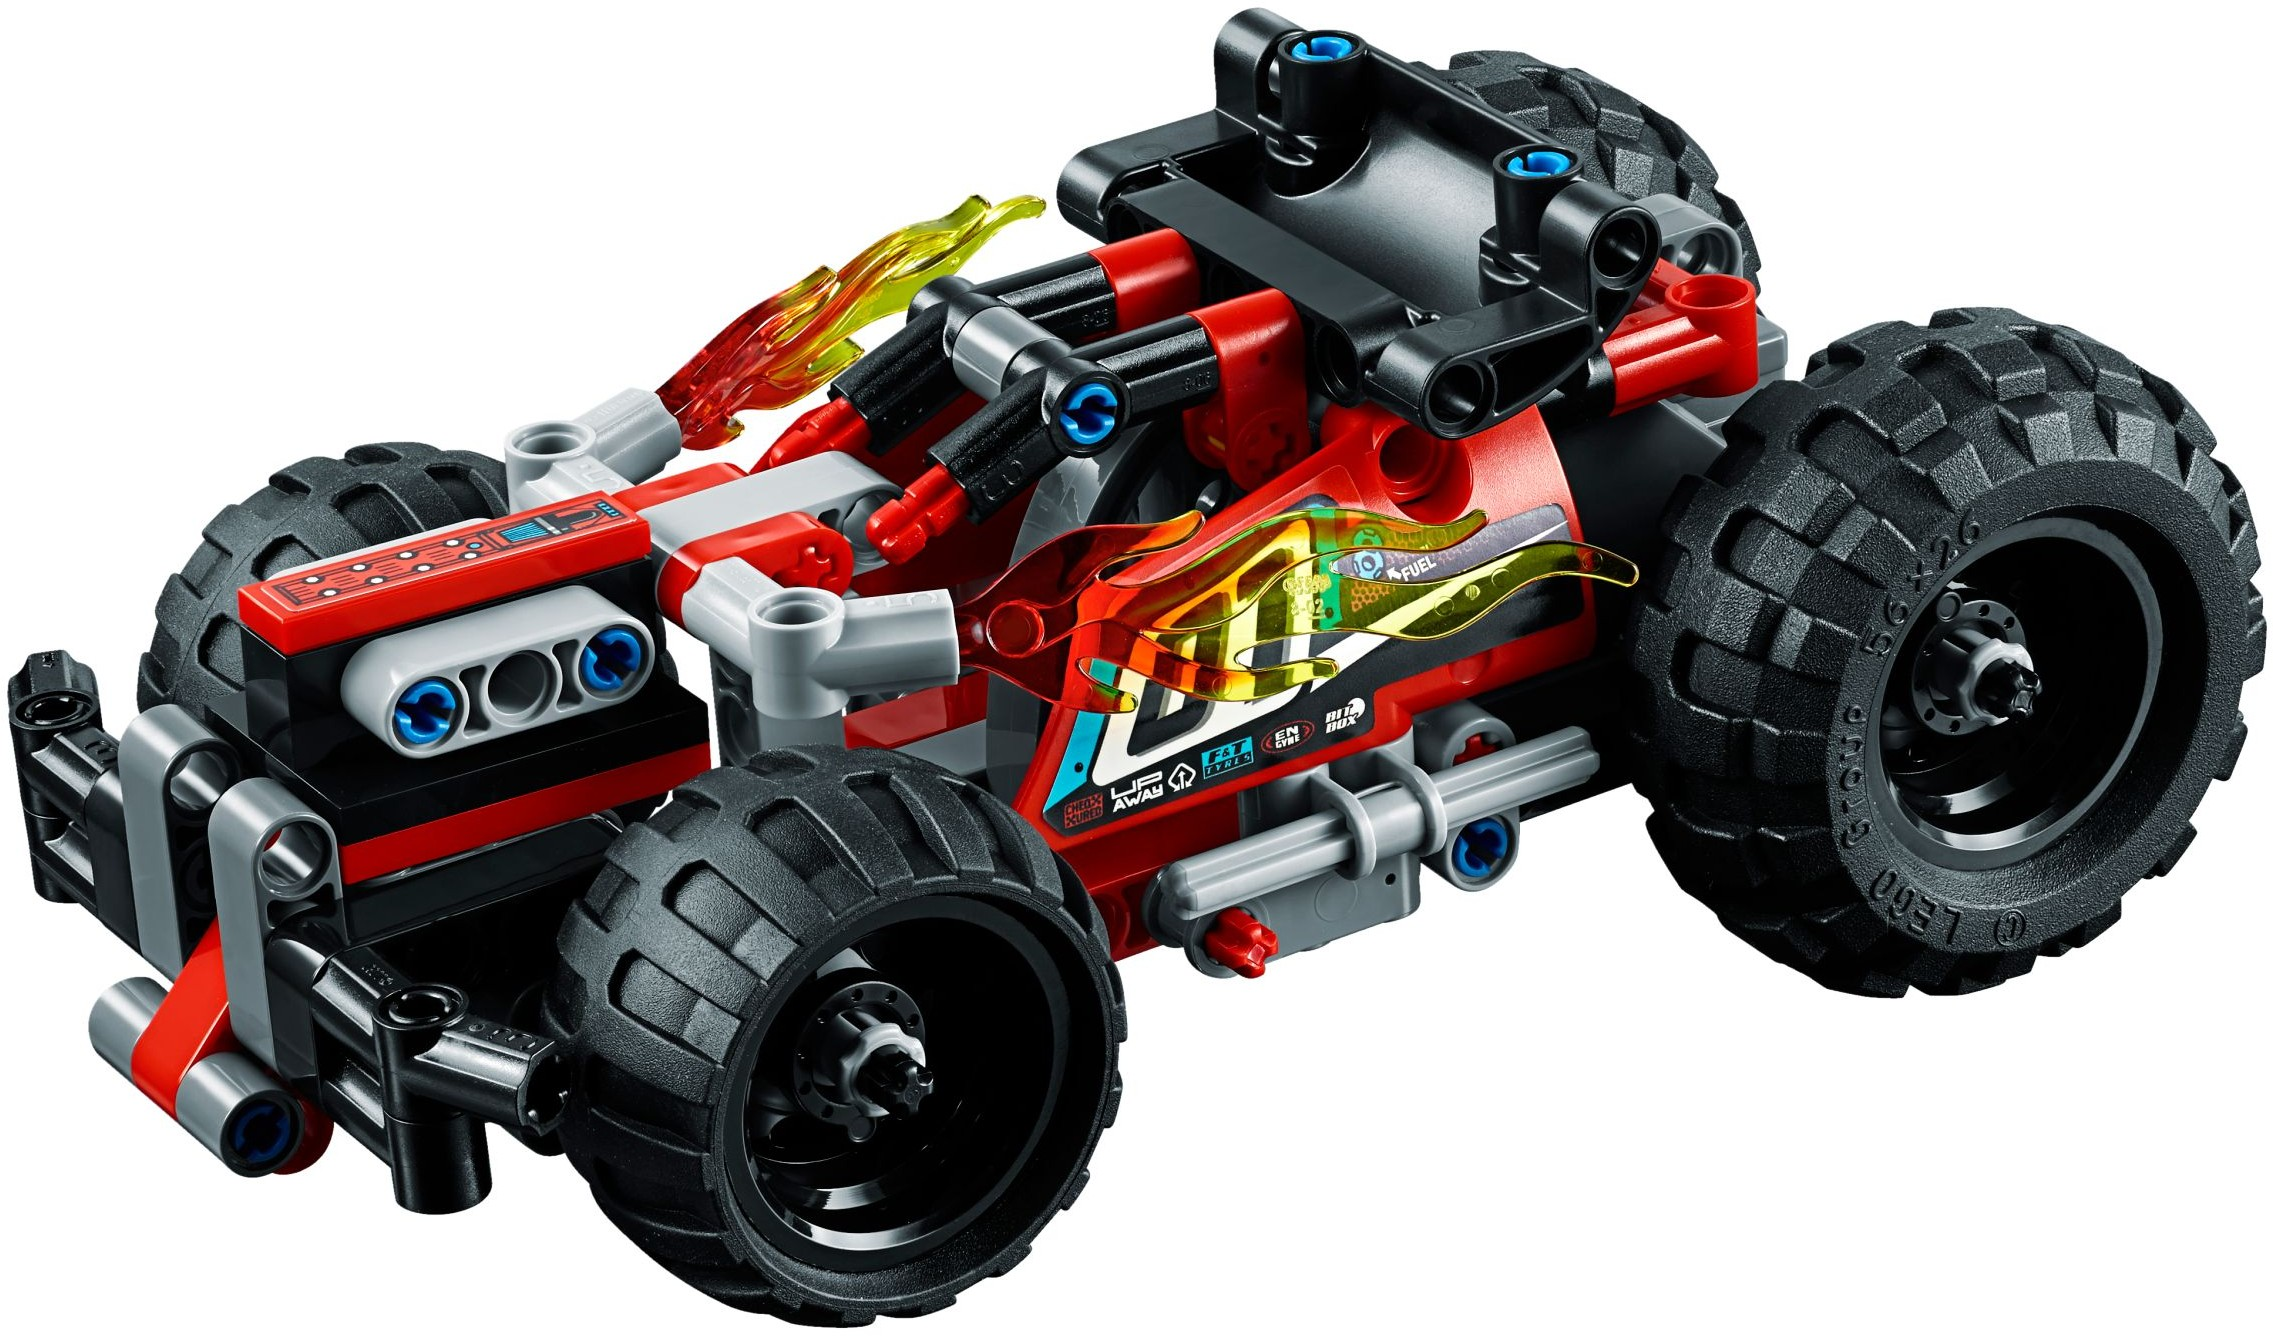 rc of car with Lego Technic 2018 Erste Set Bilder 36811 on Image 2114684 further Bmw E36 Green Bbs Style5 Gold moreover Image 2093862 in addition Jet Powered Rx7 Wtf in addition Af21 Rc Plane Minimal Art Illust Cute.